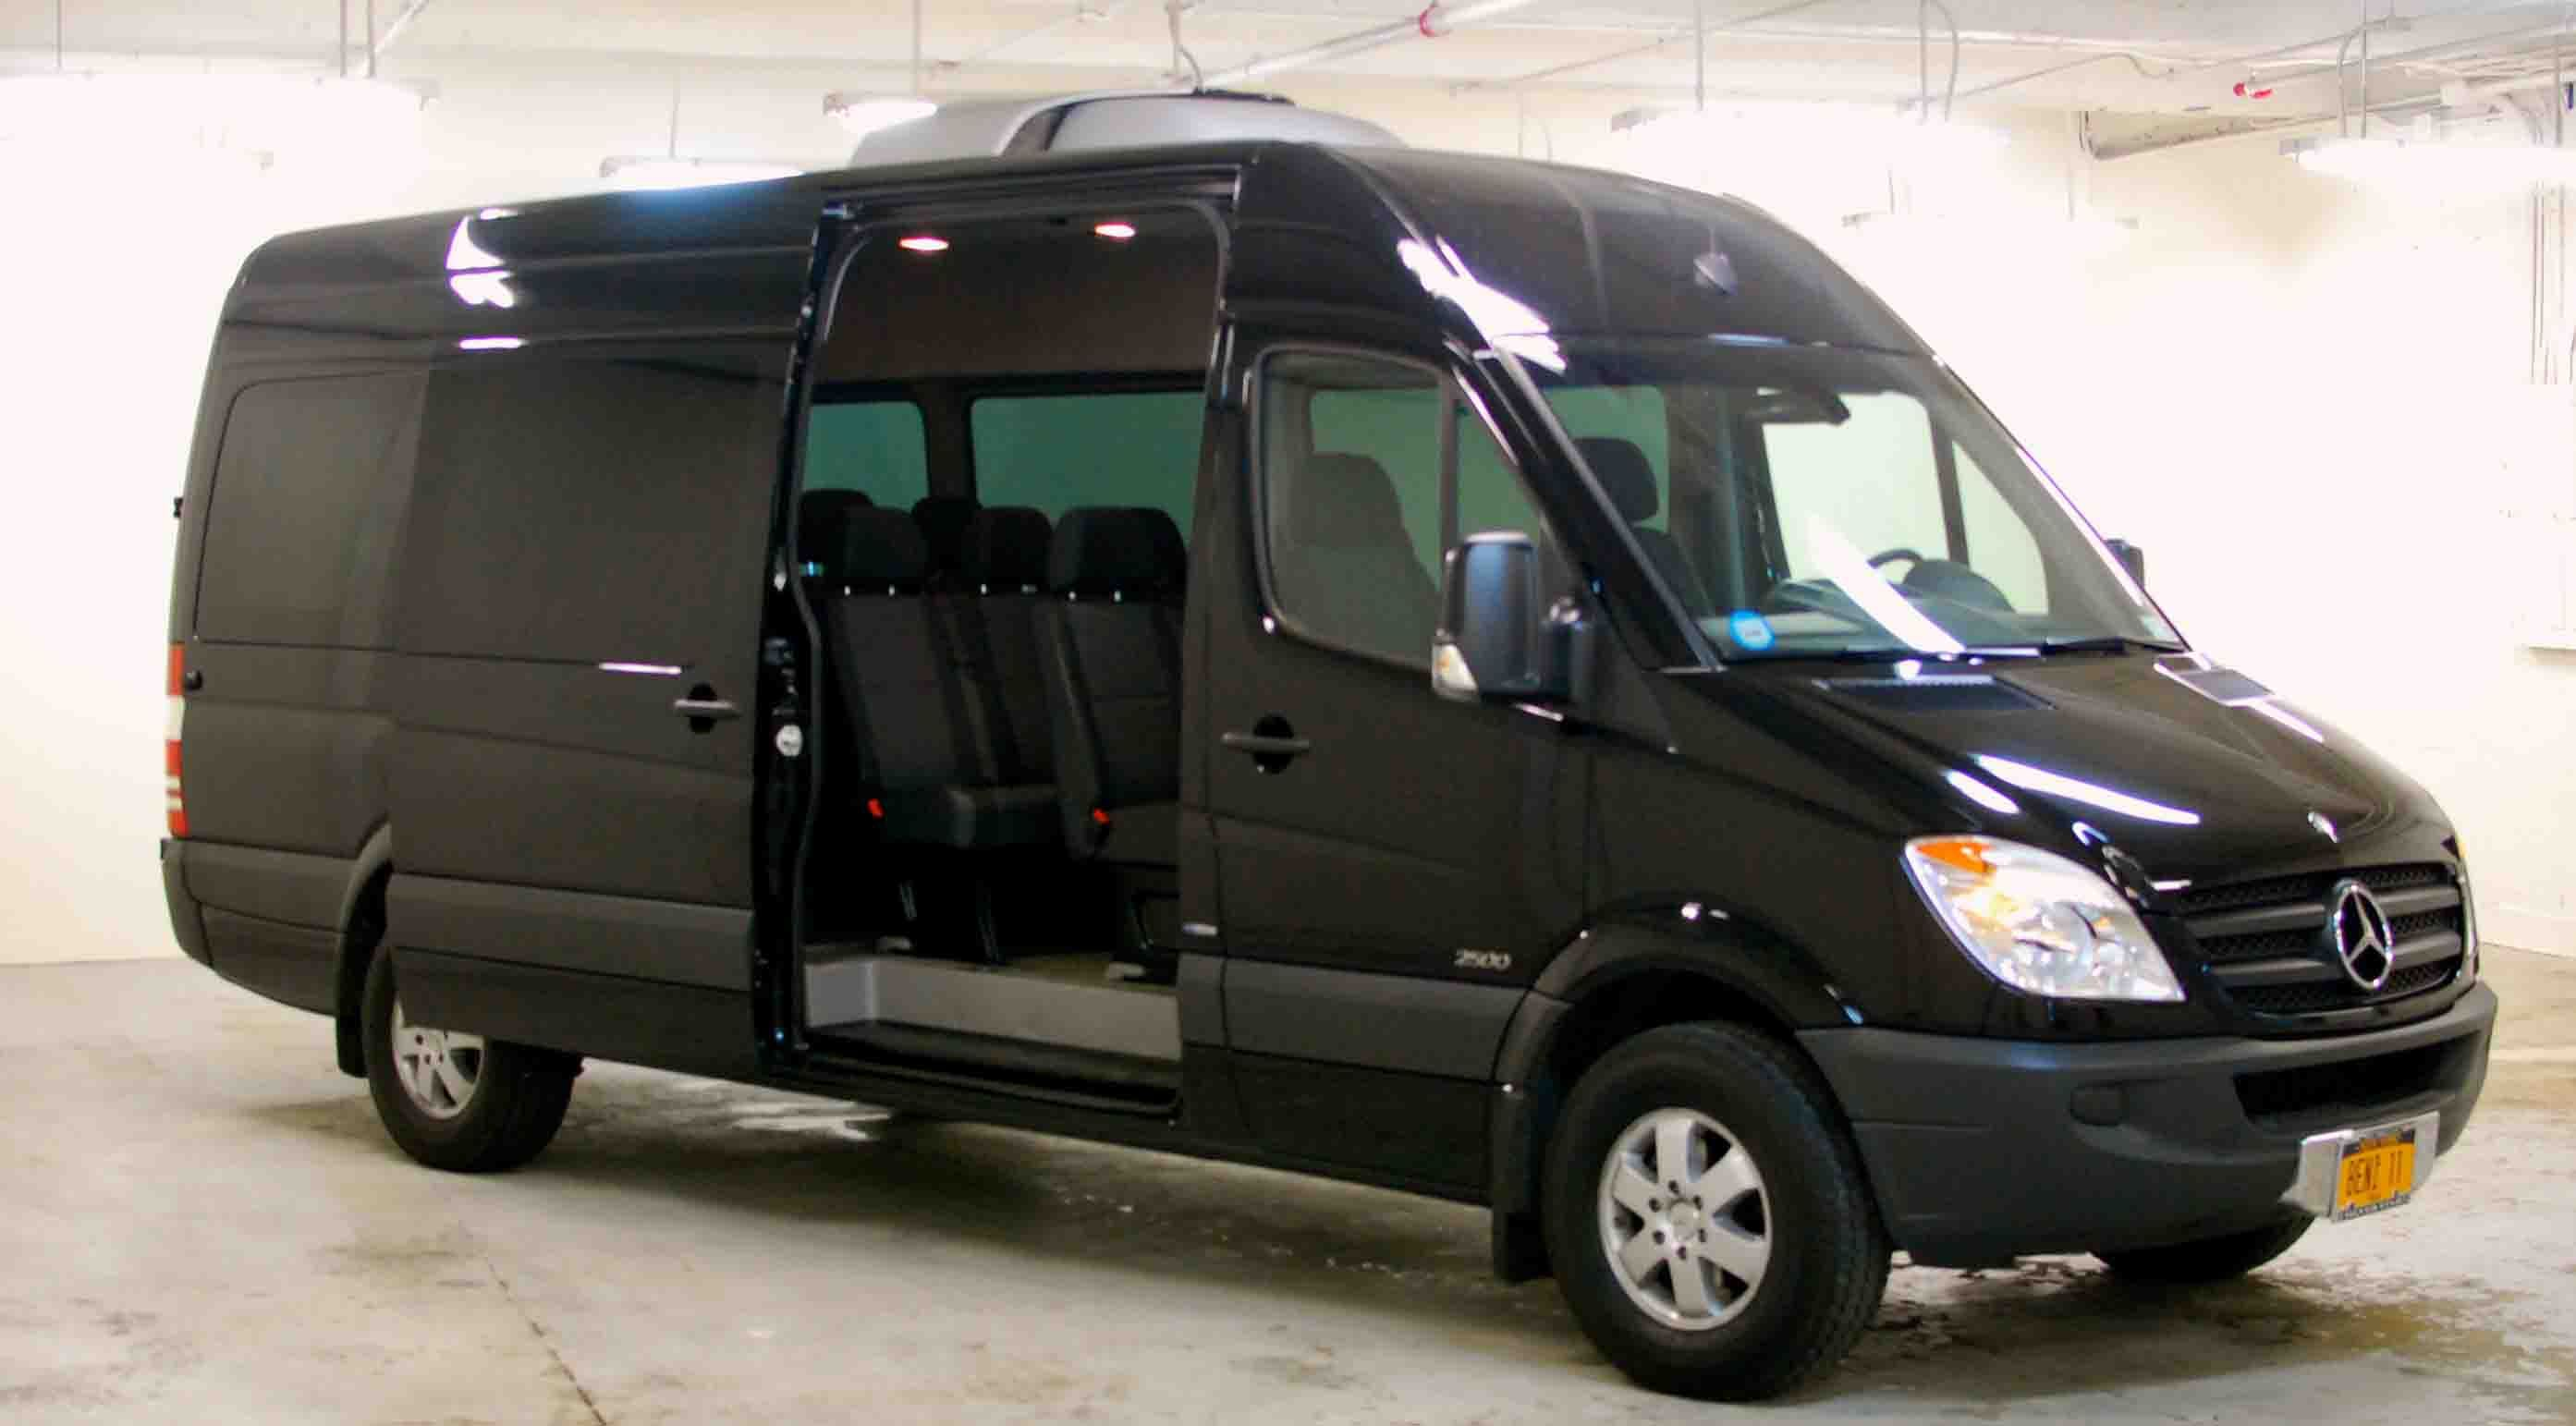 The commercial mercedes benz sprinter van car picture for Mercedes benz sprinter rental